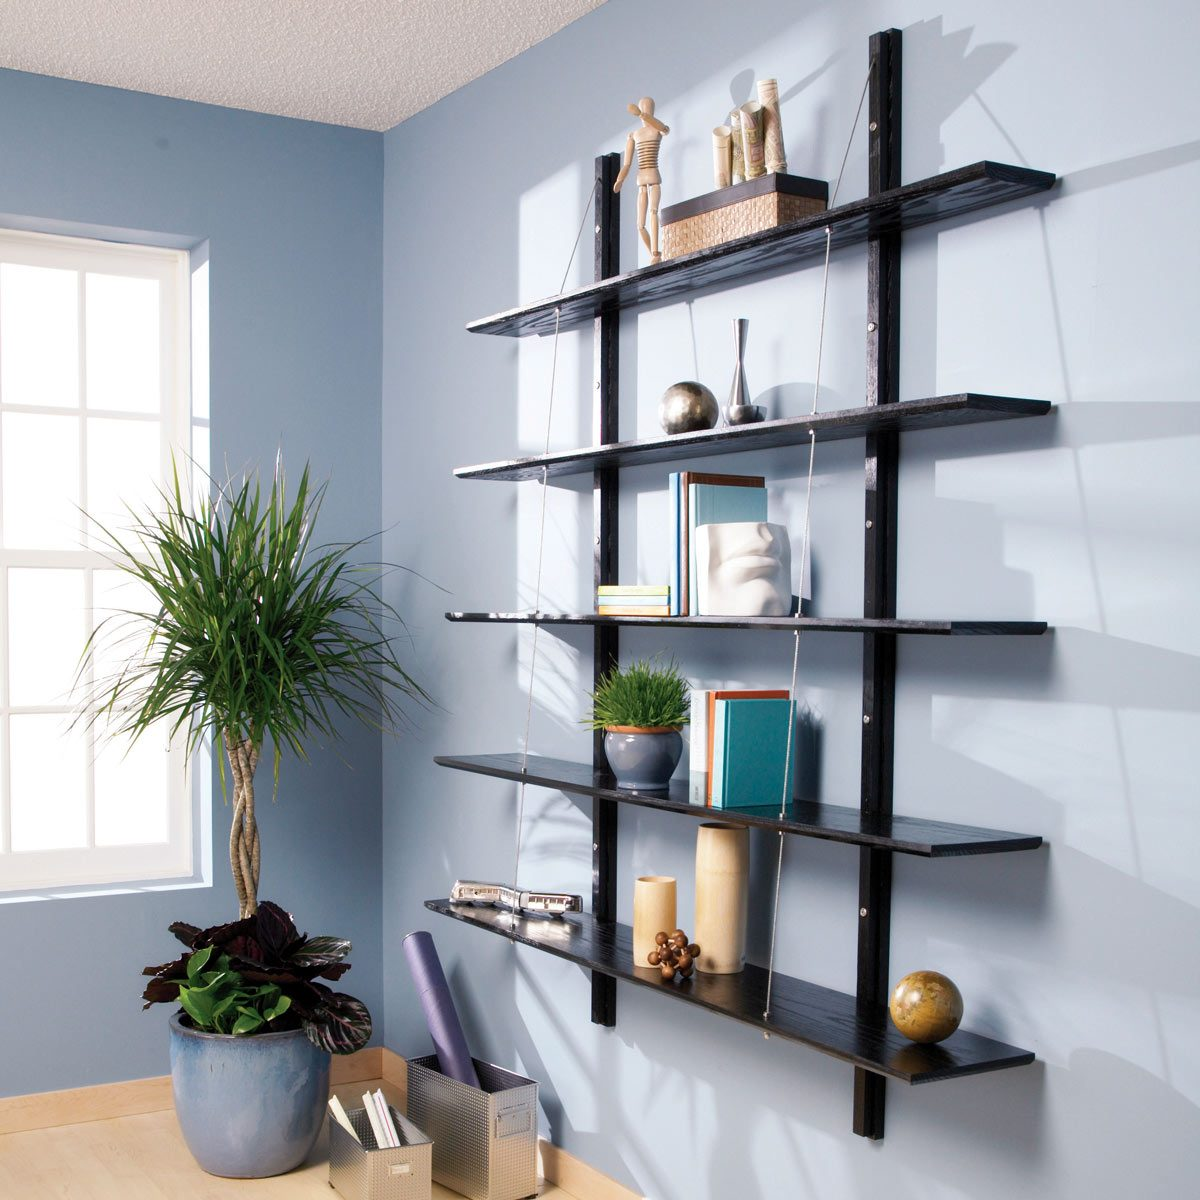 steel chair joints swing stand india 33 bookcase projects and building tips | the family handyman